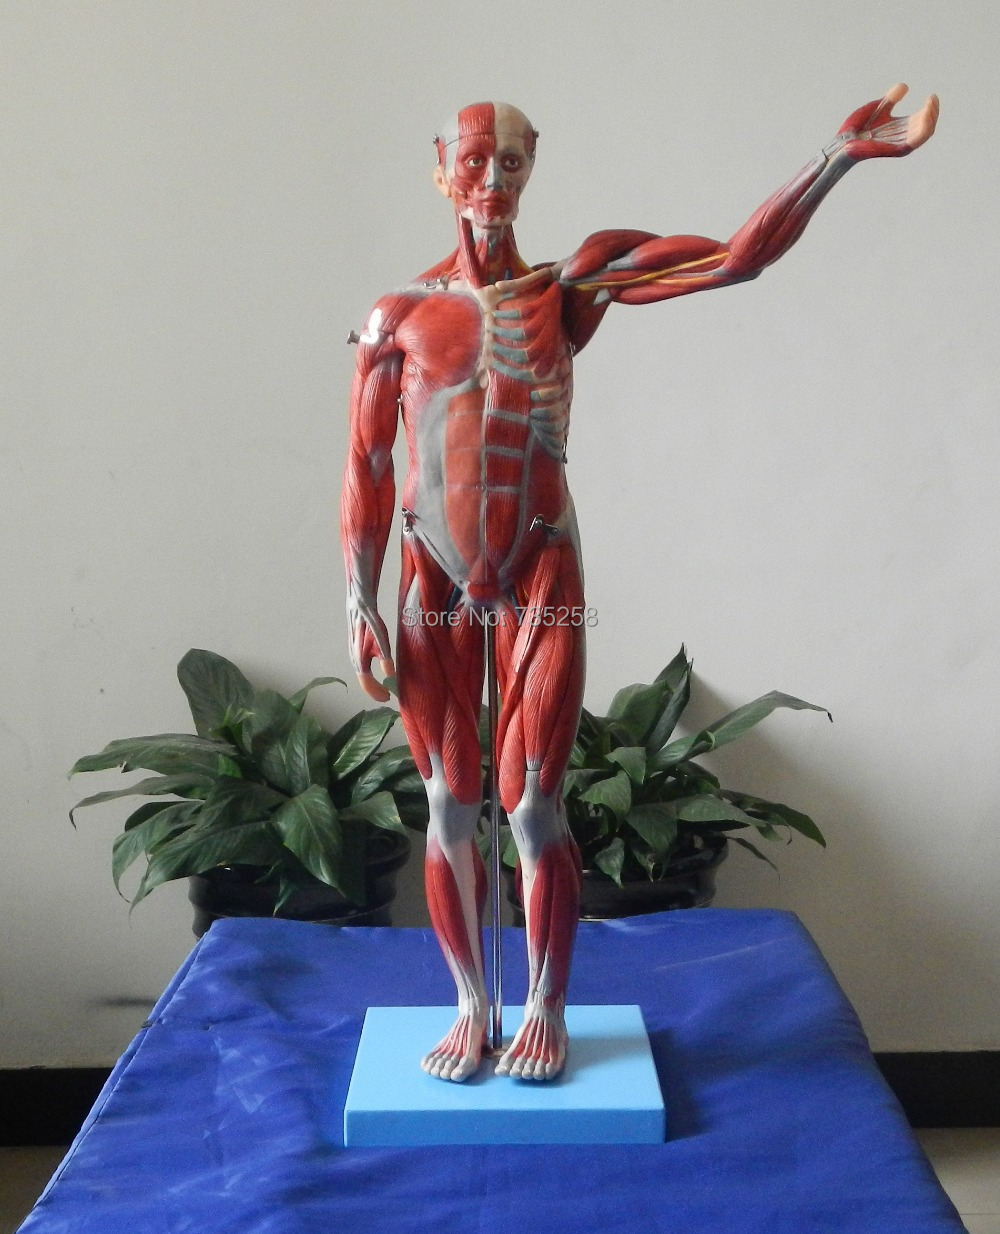 ISO Body Muscles Anatomical Model,Human Muscle Anatomy Teaching Model,Human Muscle Breakdown Model iso median section of head model anatomical head model